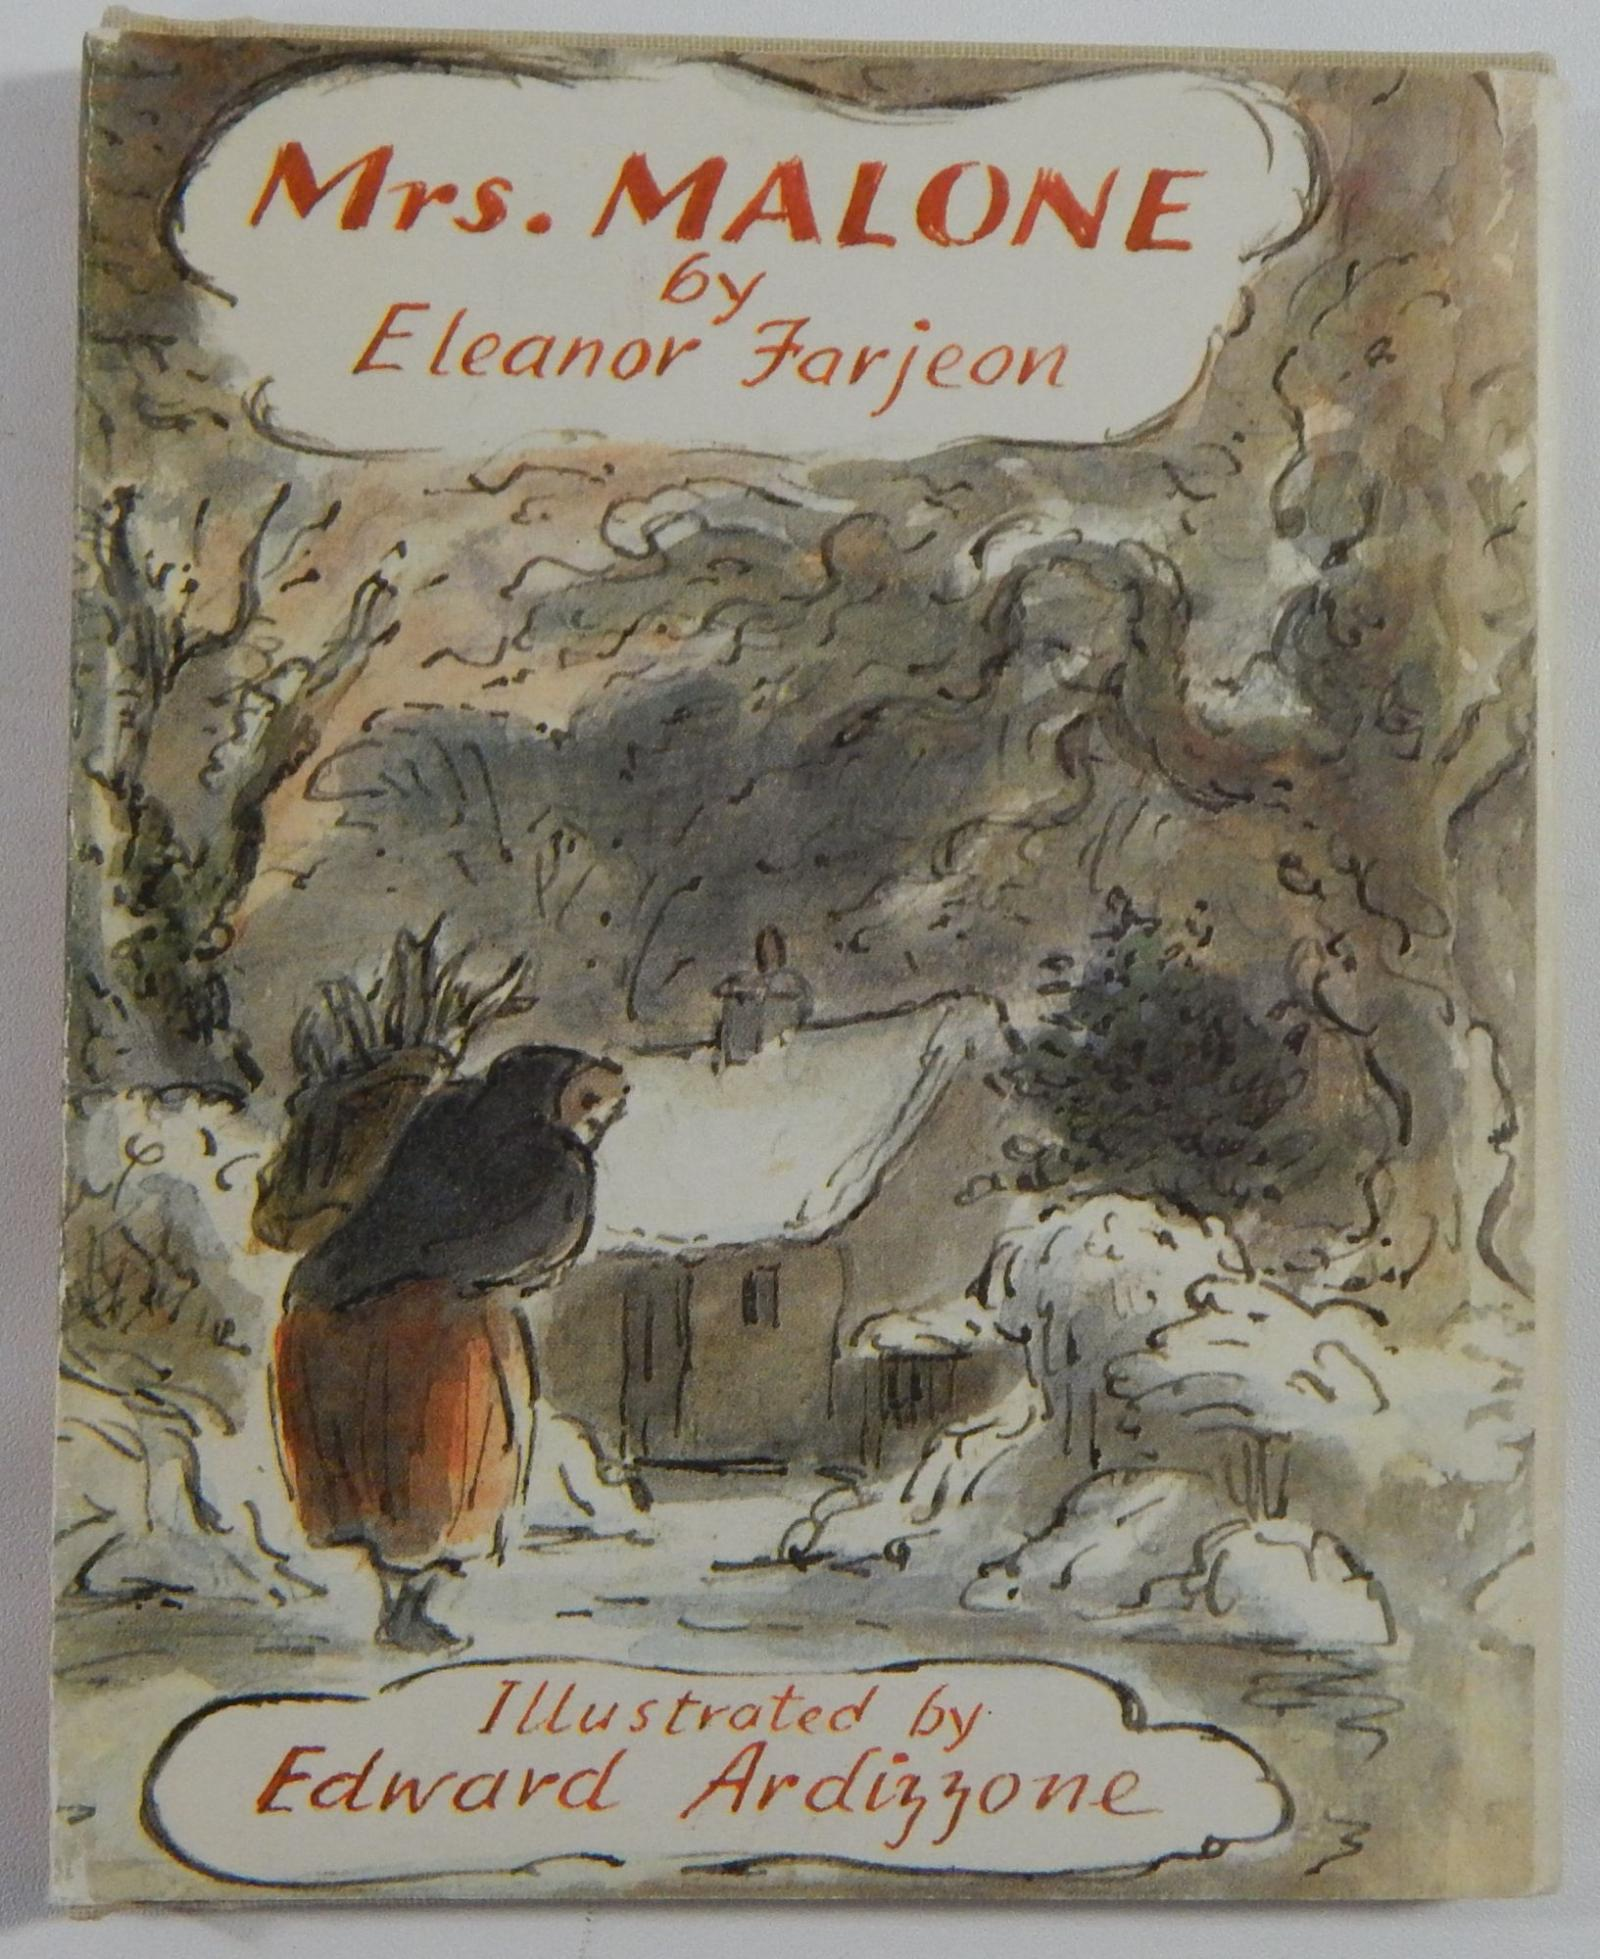 Cover Illustration by Edward Ardizzone for 'Mrs. Malone' by Eleanor Farjeon